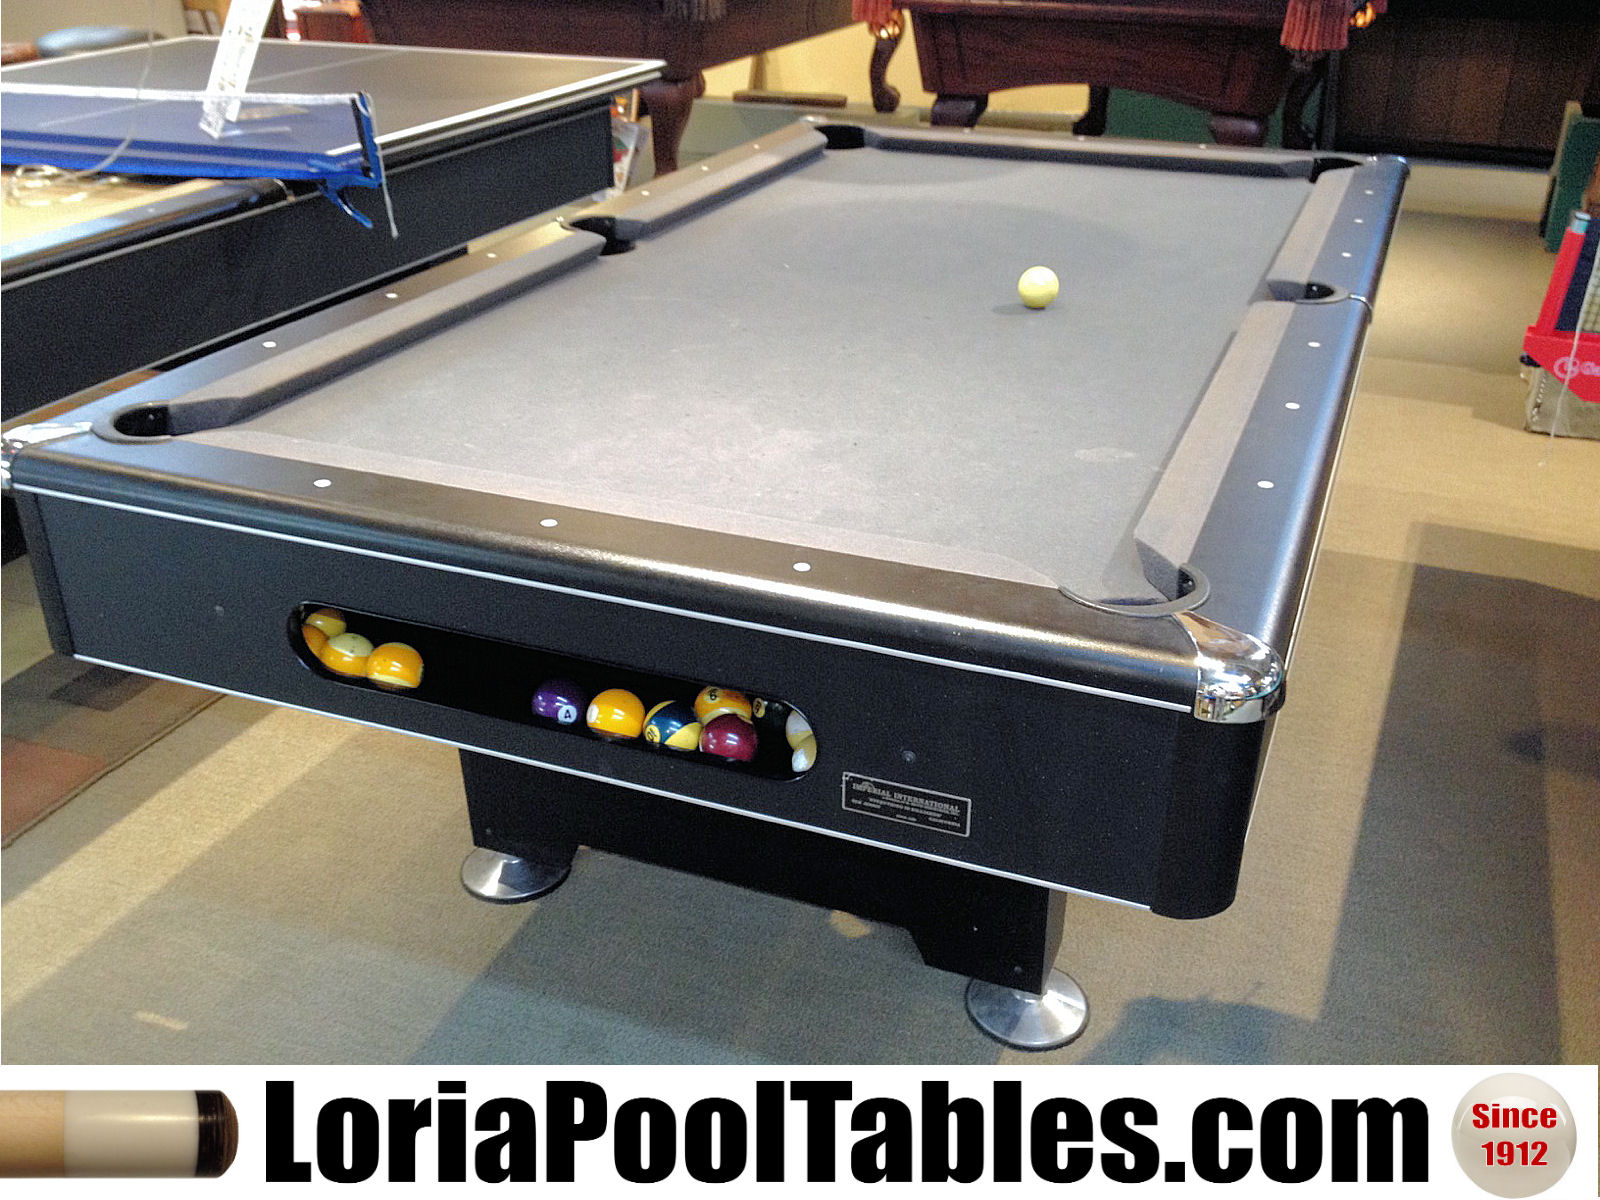 SOLDPreowned Ft Eliminator Pool Table Loria Awards - Eliminator pool table